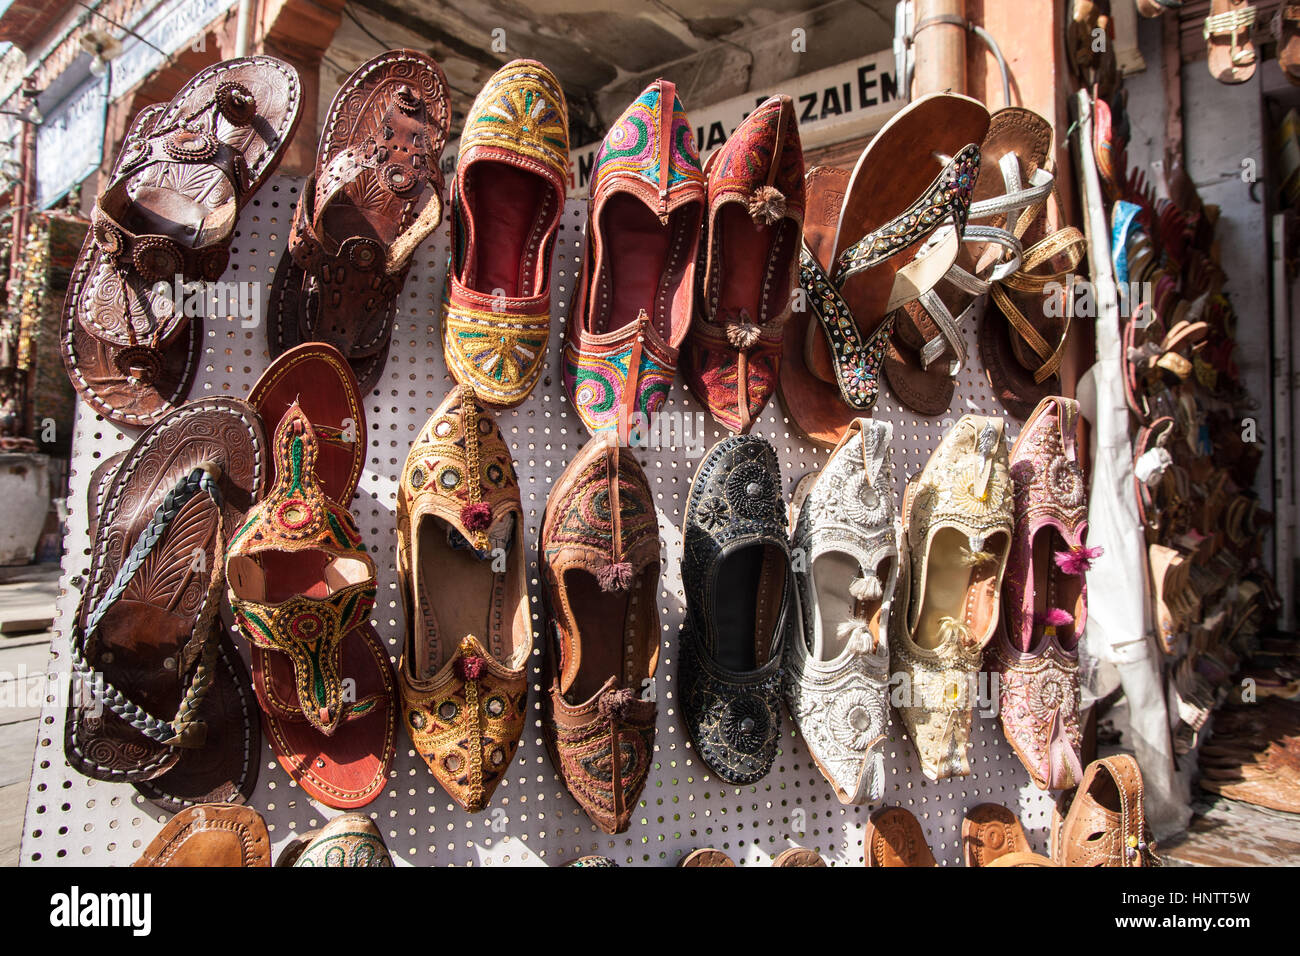 8868004f6eb3 Indian Shoe Stall Stock Photos   Indian Shoe Stall Stock Images - Alamy